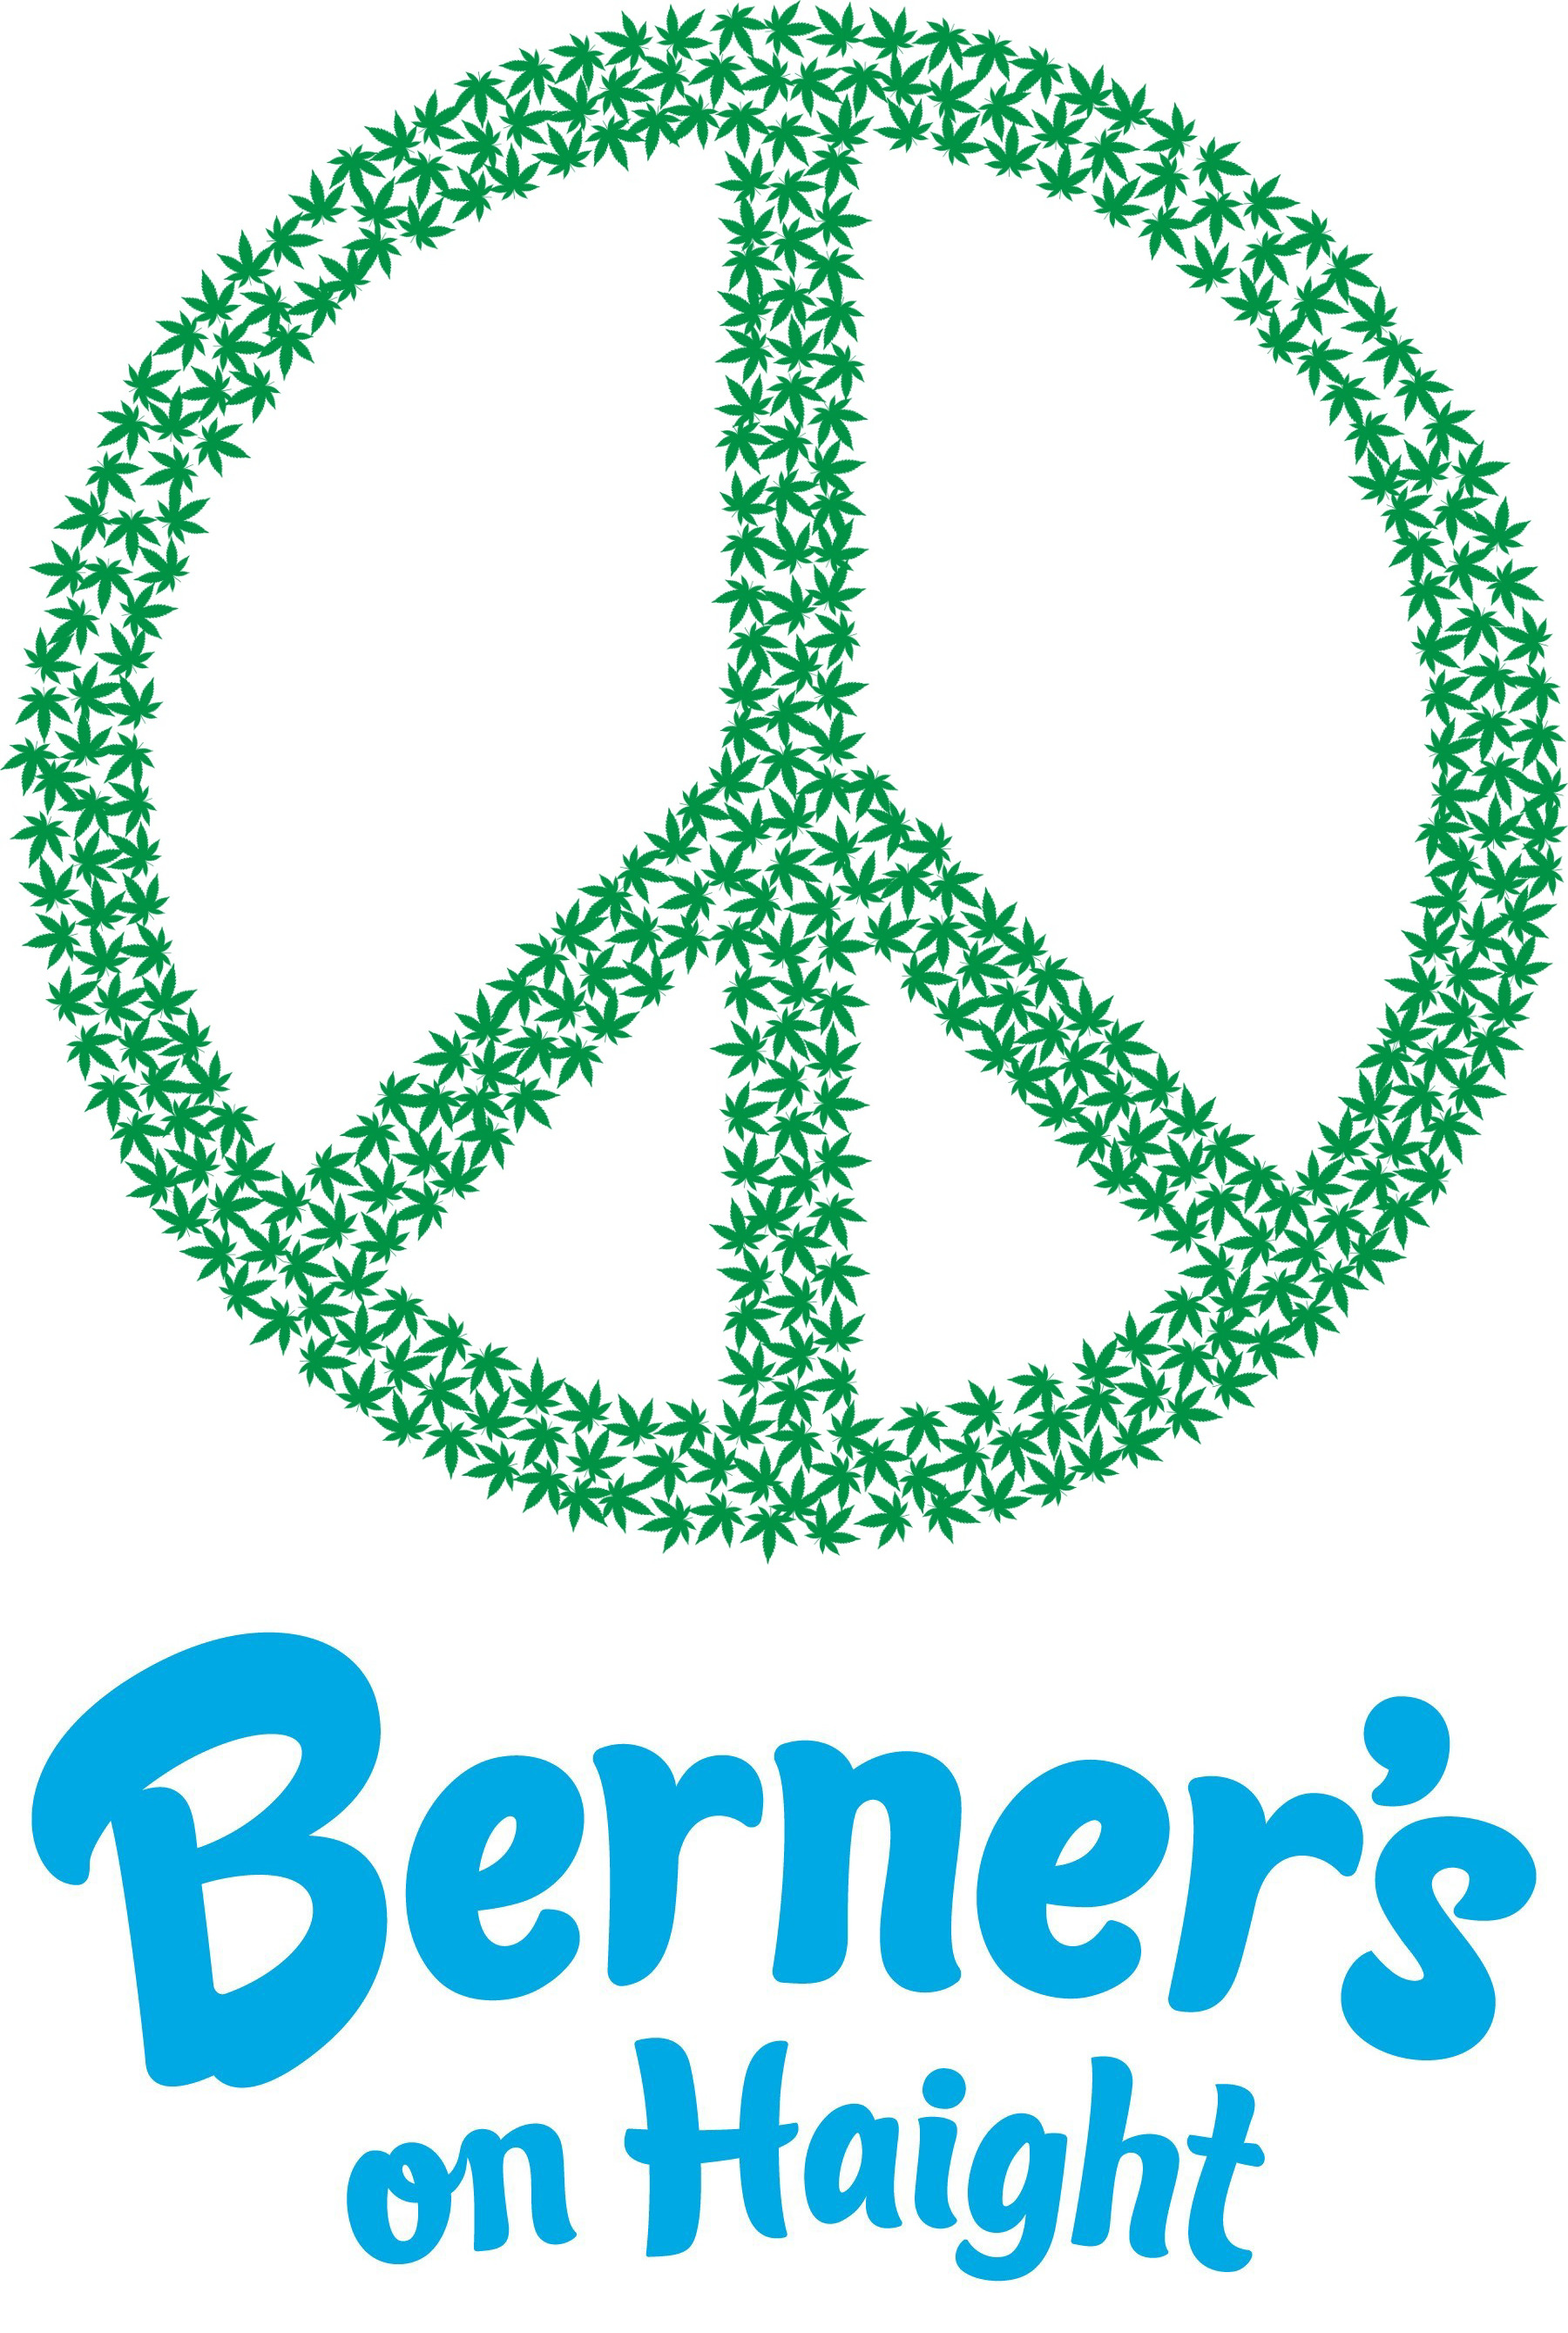 (Top) Peace sign marijuana leaves graphic. (Bottom) Berner's on Haight logo.